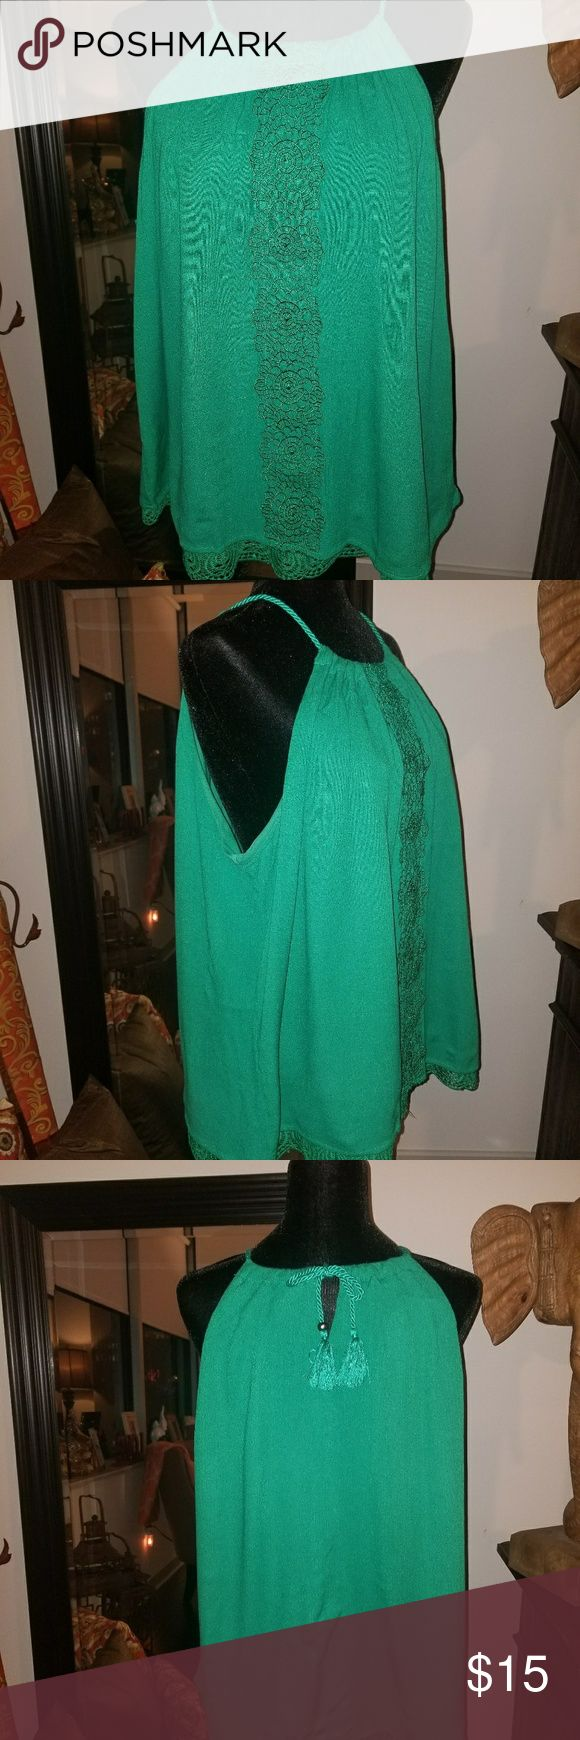 Camisol top Green cami top. Bought it because I loved the green. Will look nice under a cardigan or a business suit. Tops Camisoles